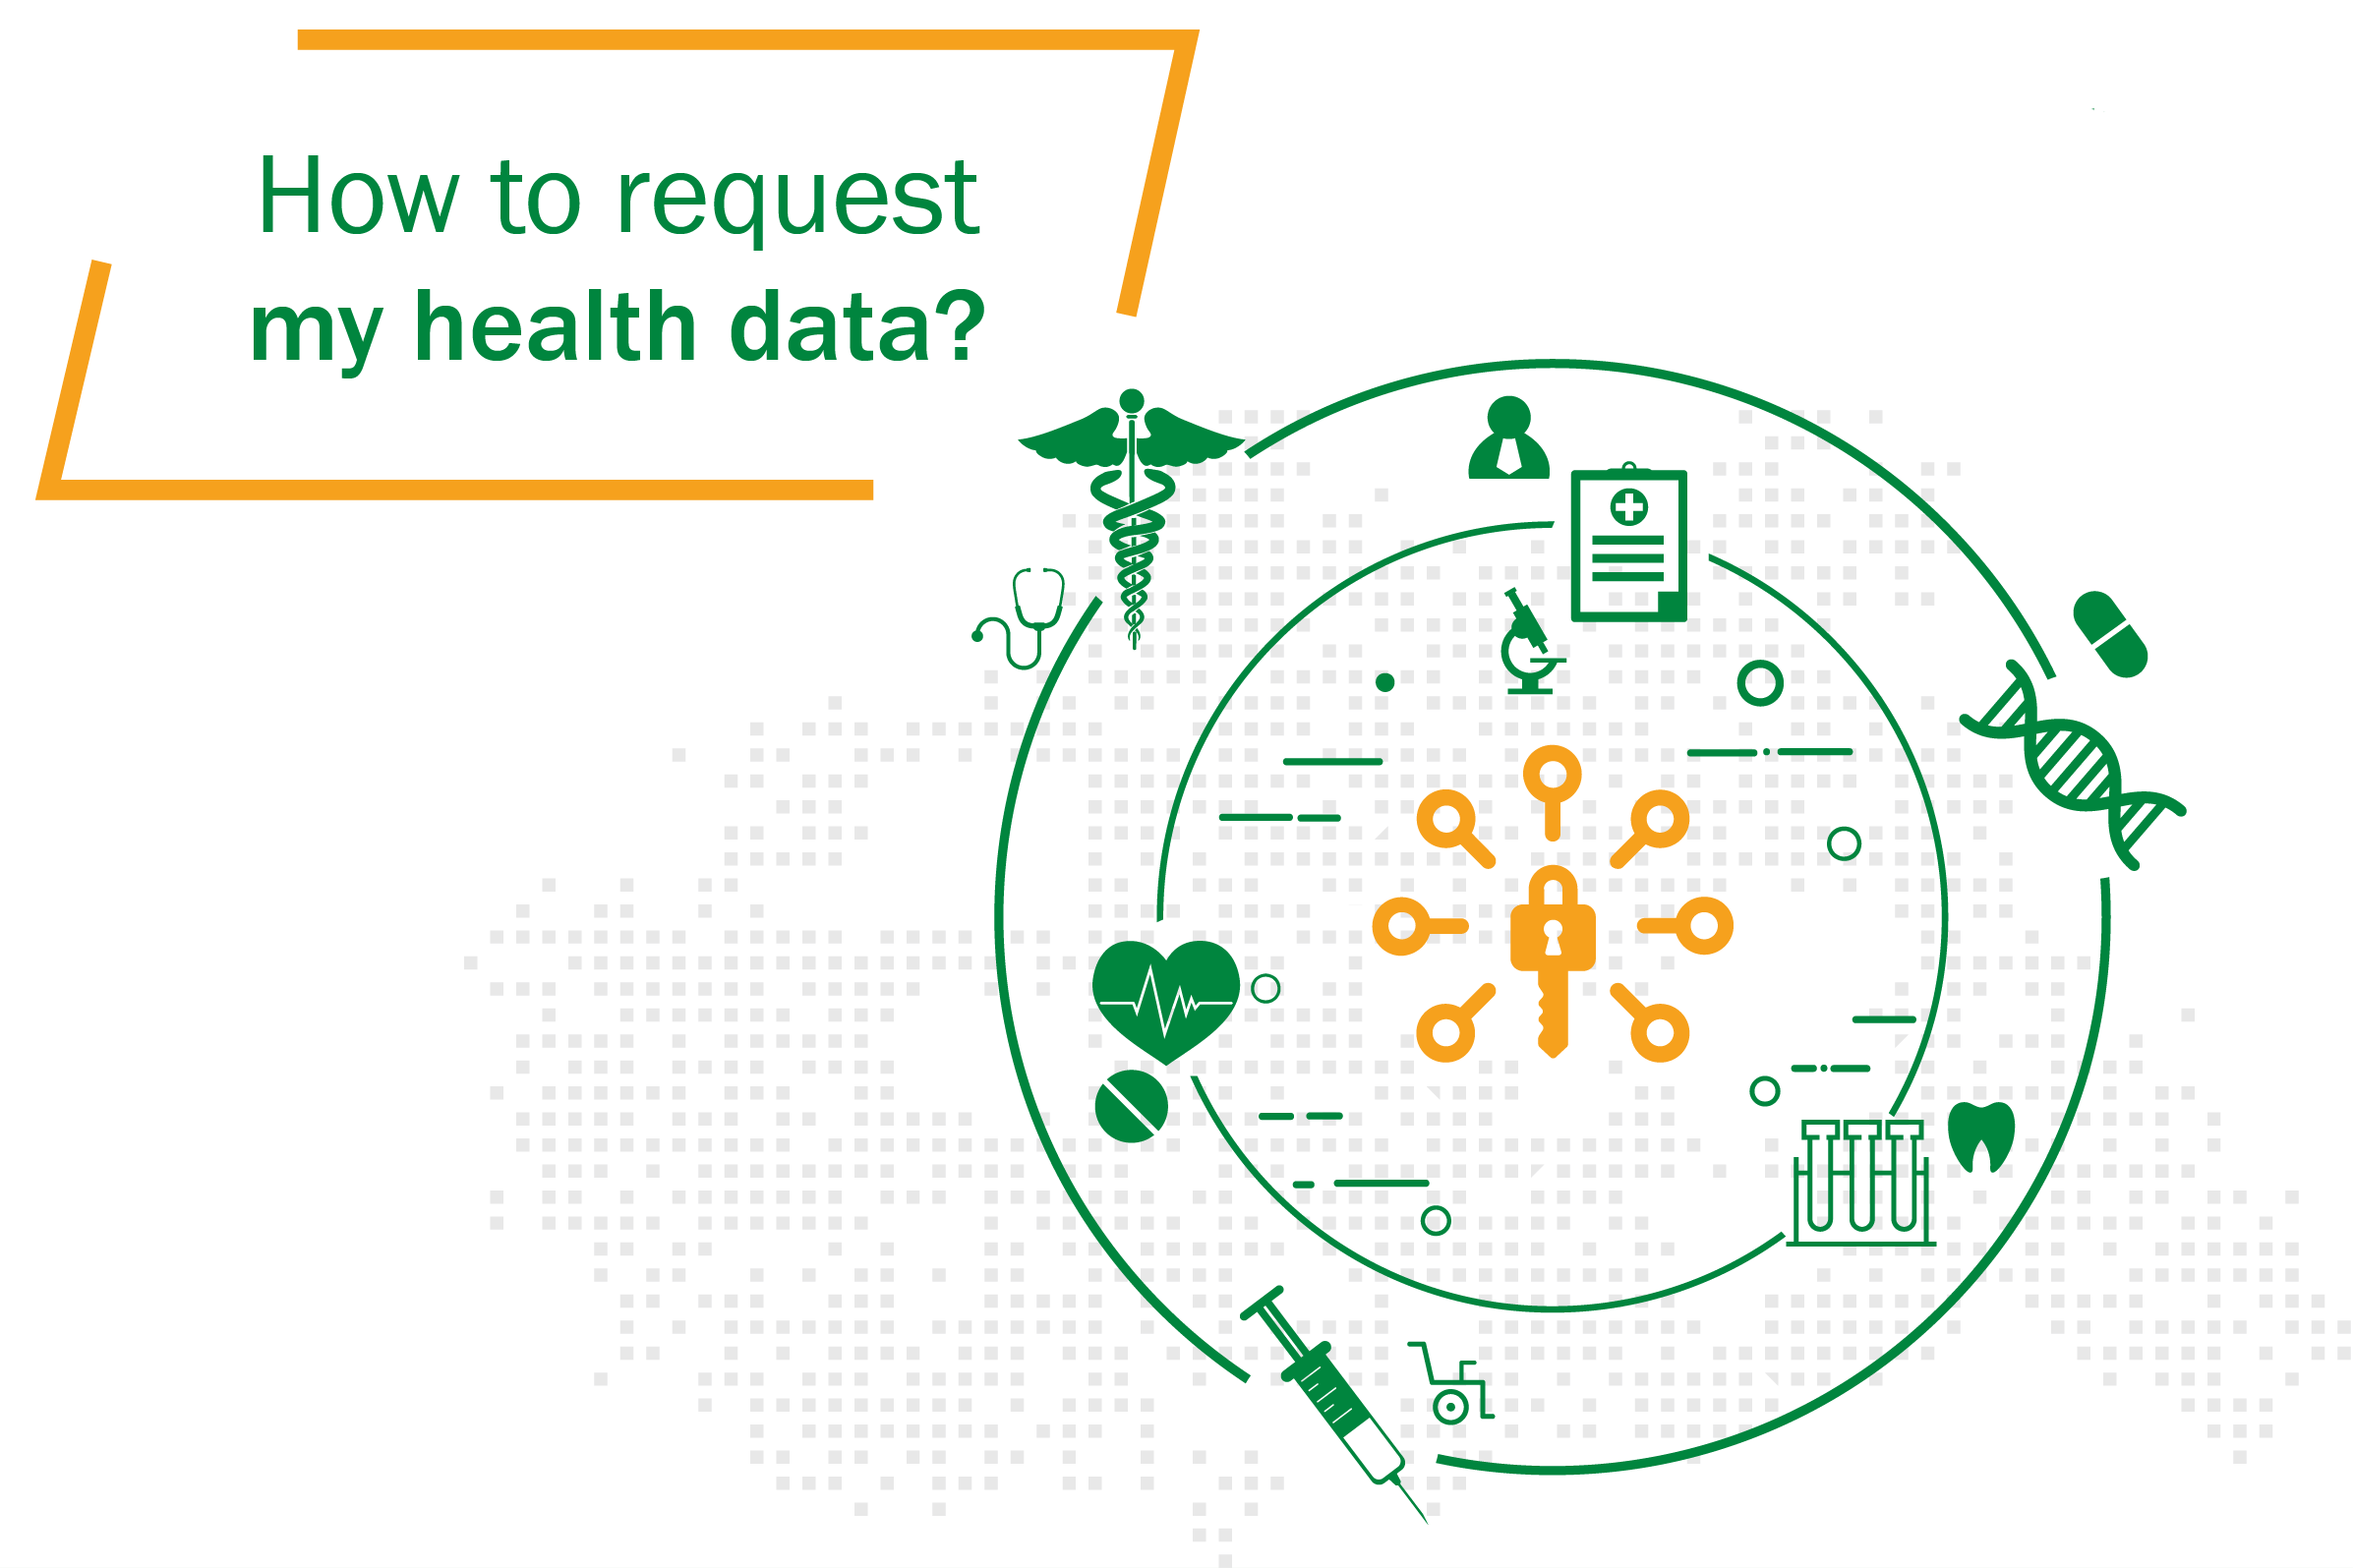 How to request my health data